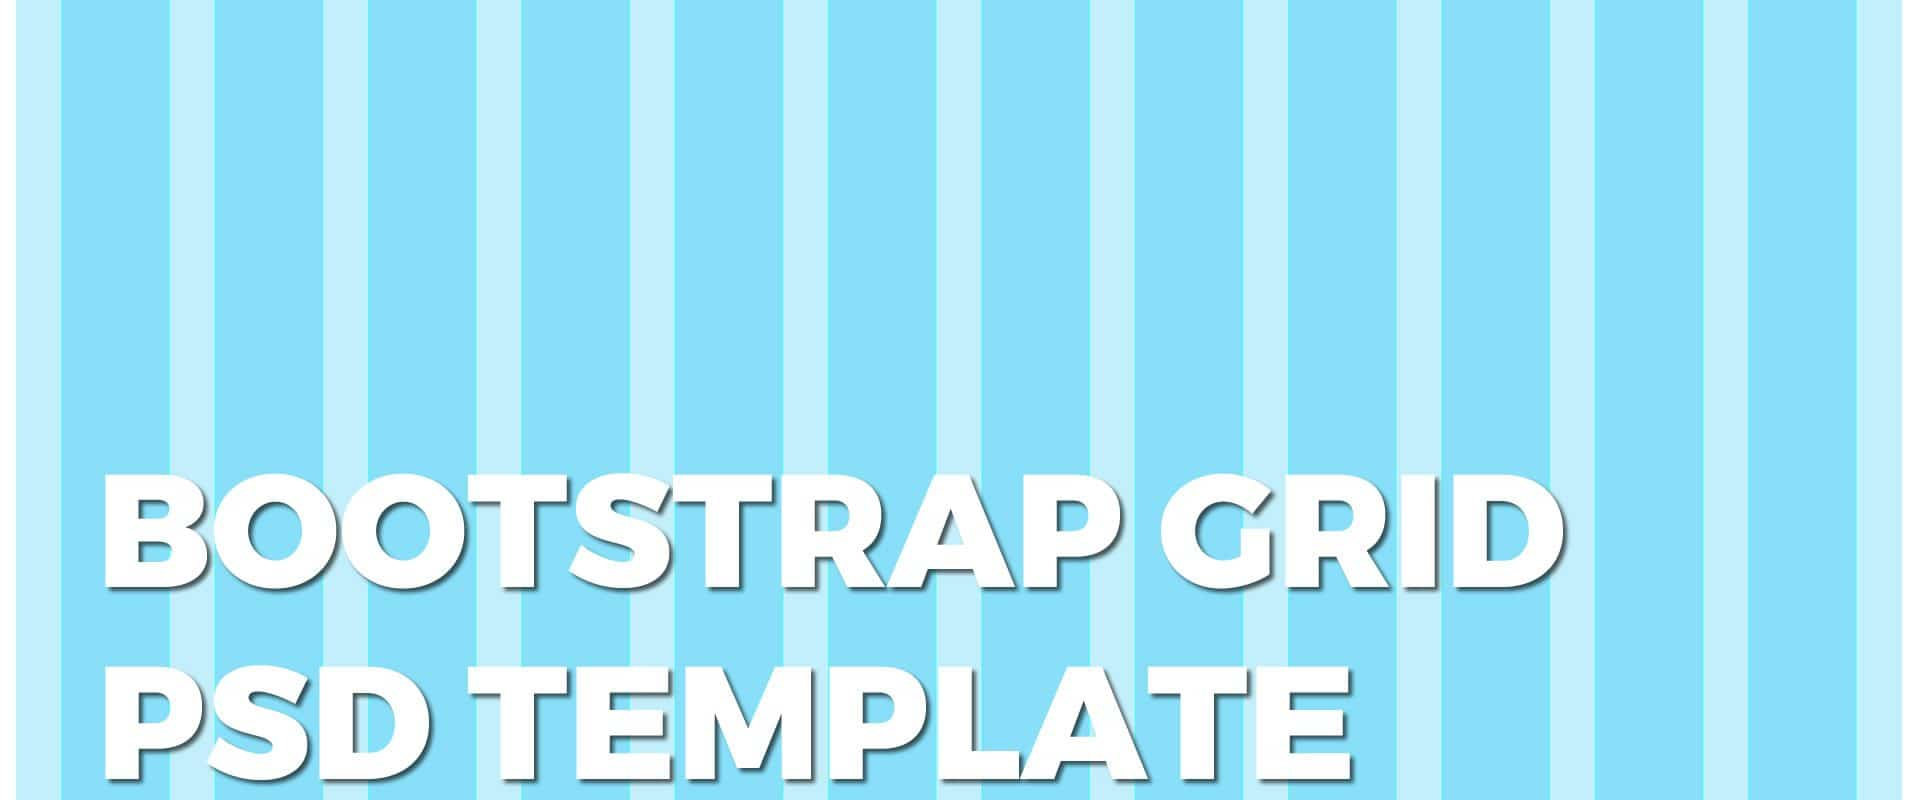 bootstrap-grid-tempate-psd